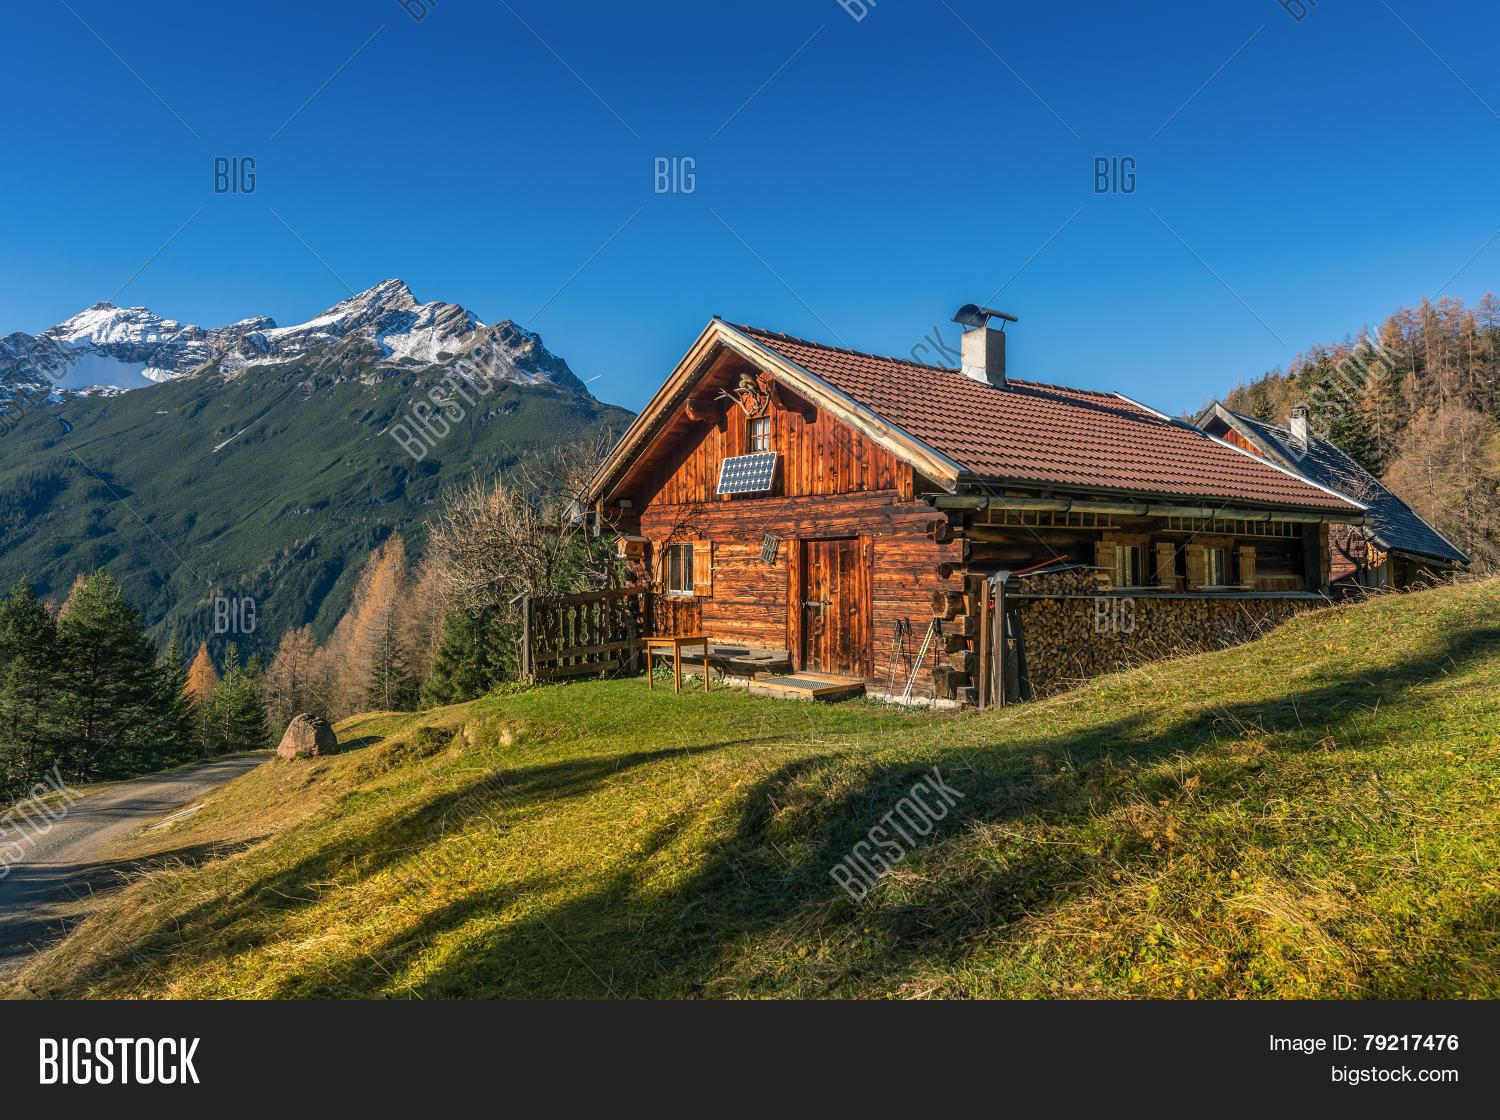 Old Wooden Hut Cabin Mountain Alps Bigstock